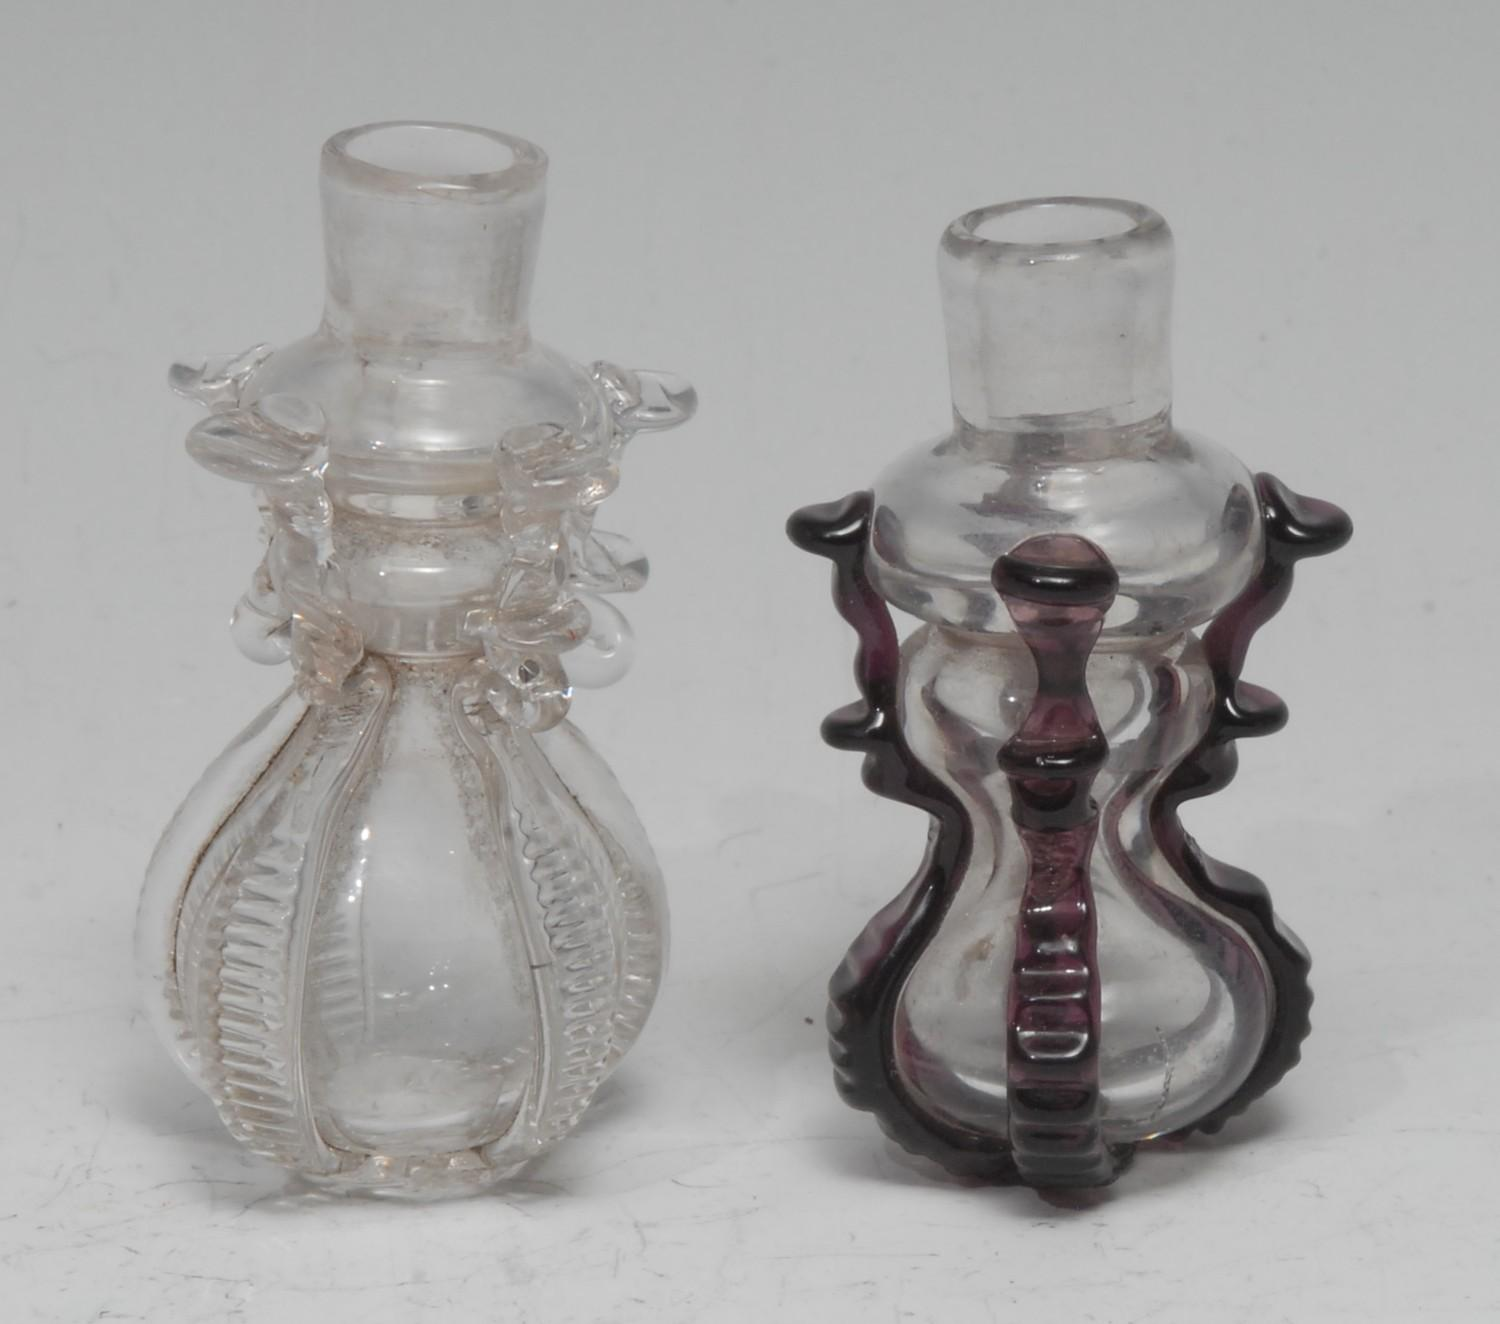 A small 18th century cruciform glass flask or phial, hourglass reservoir applied with purple lugs,